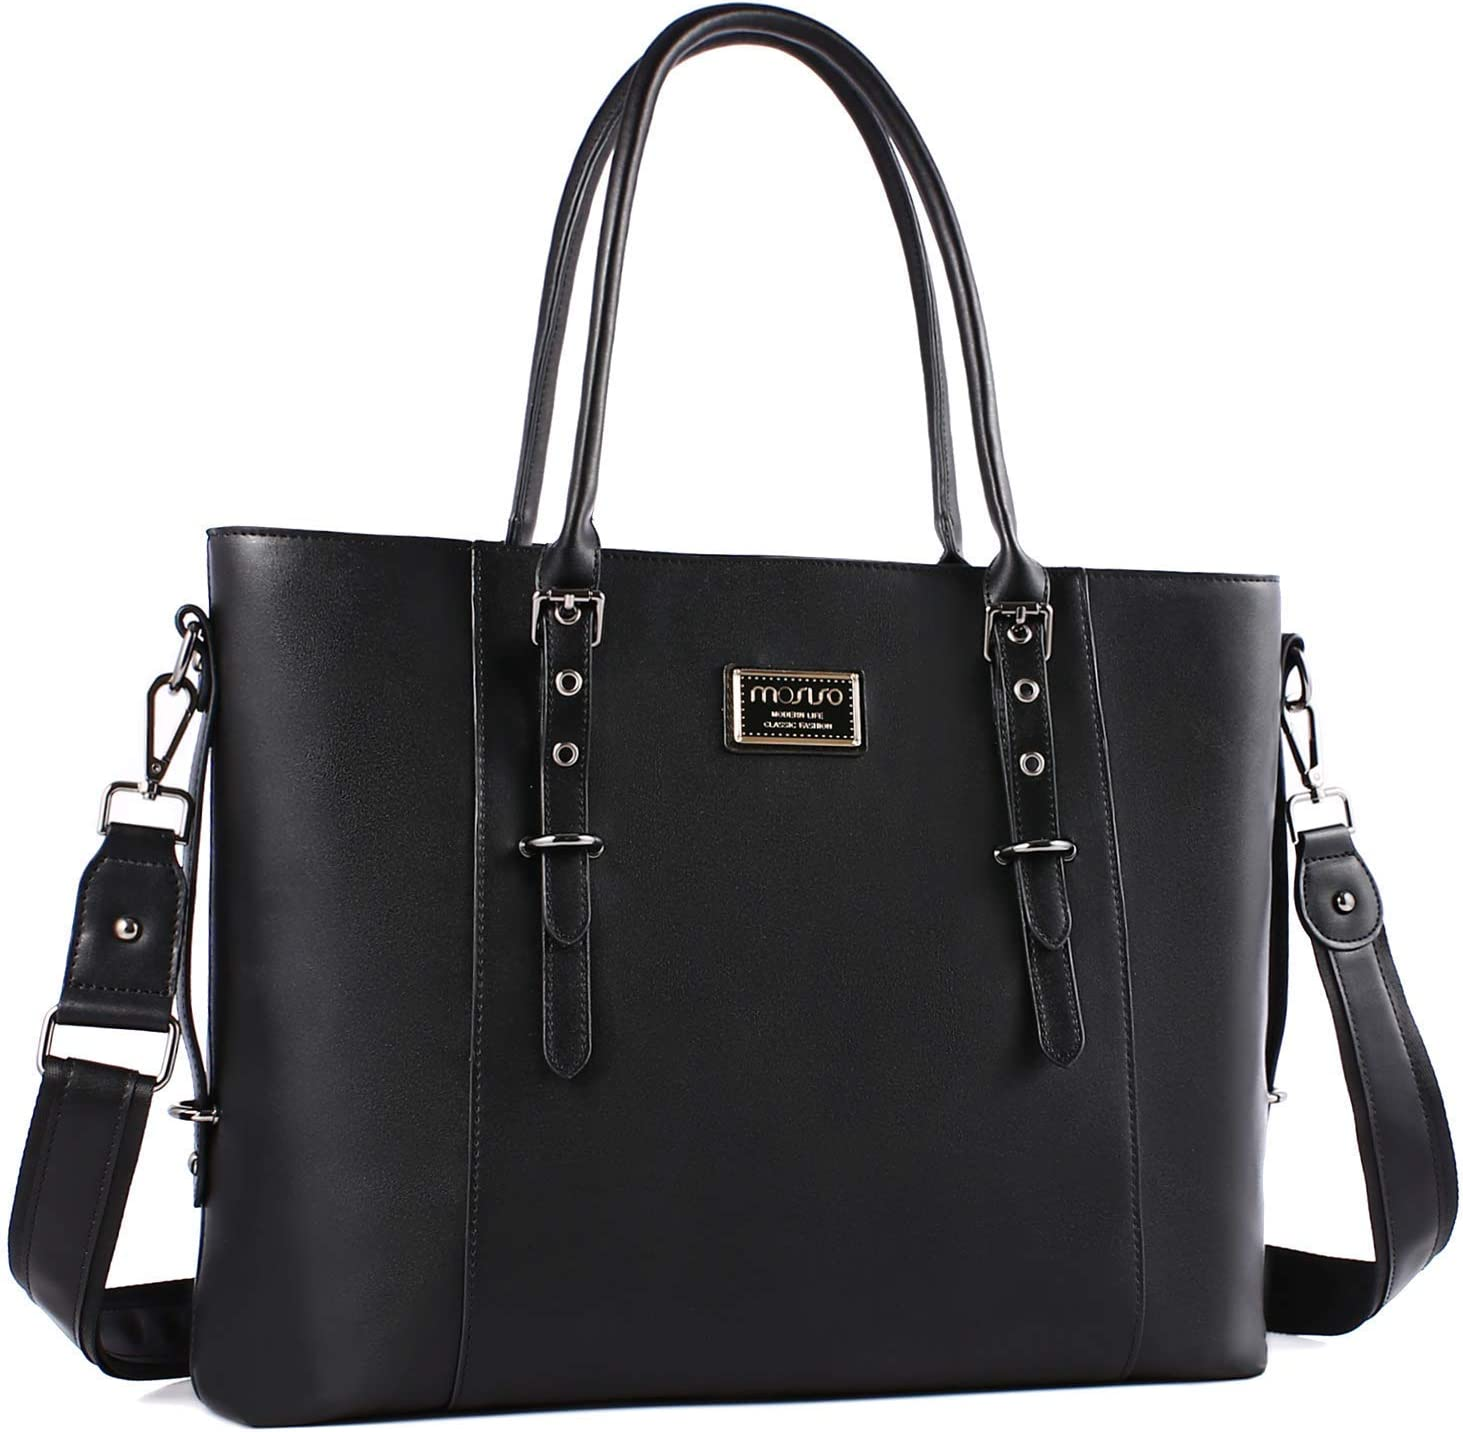 MOSISO PU Leather Laptop Tote Bag for Women Up to 17.3 inch Gray